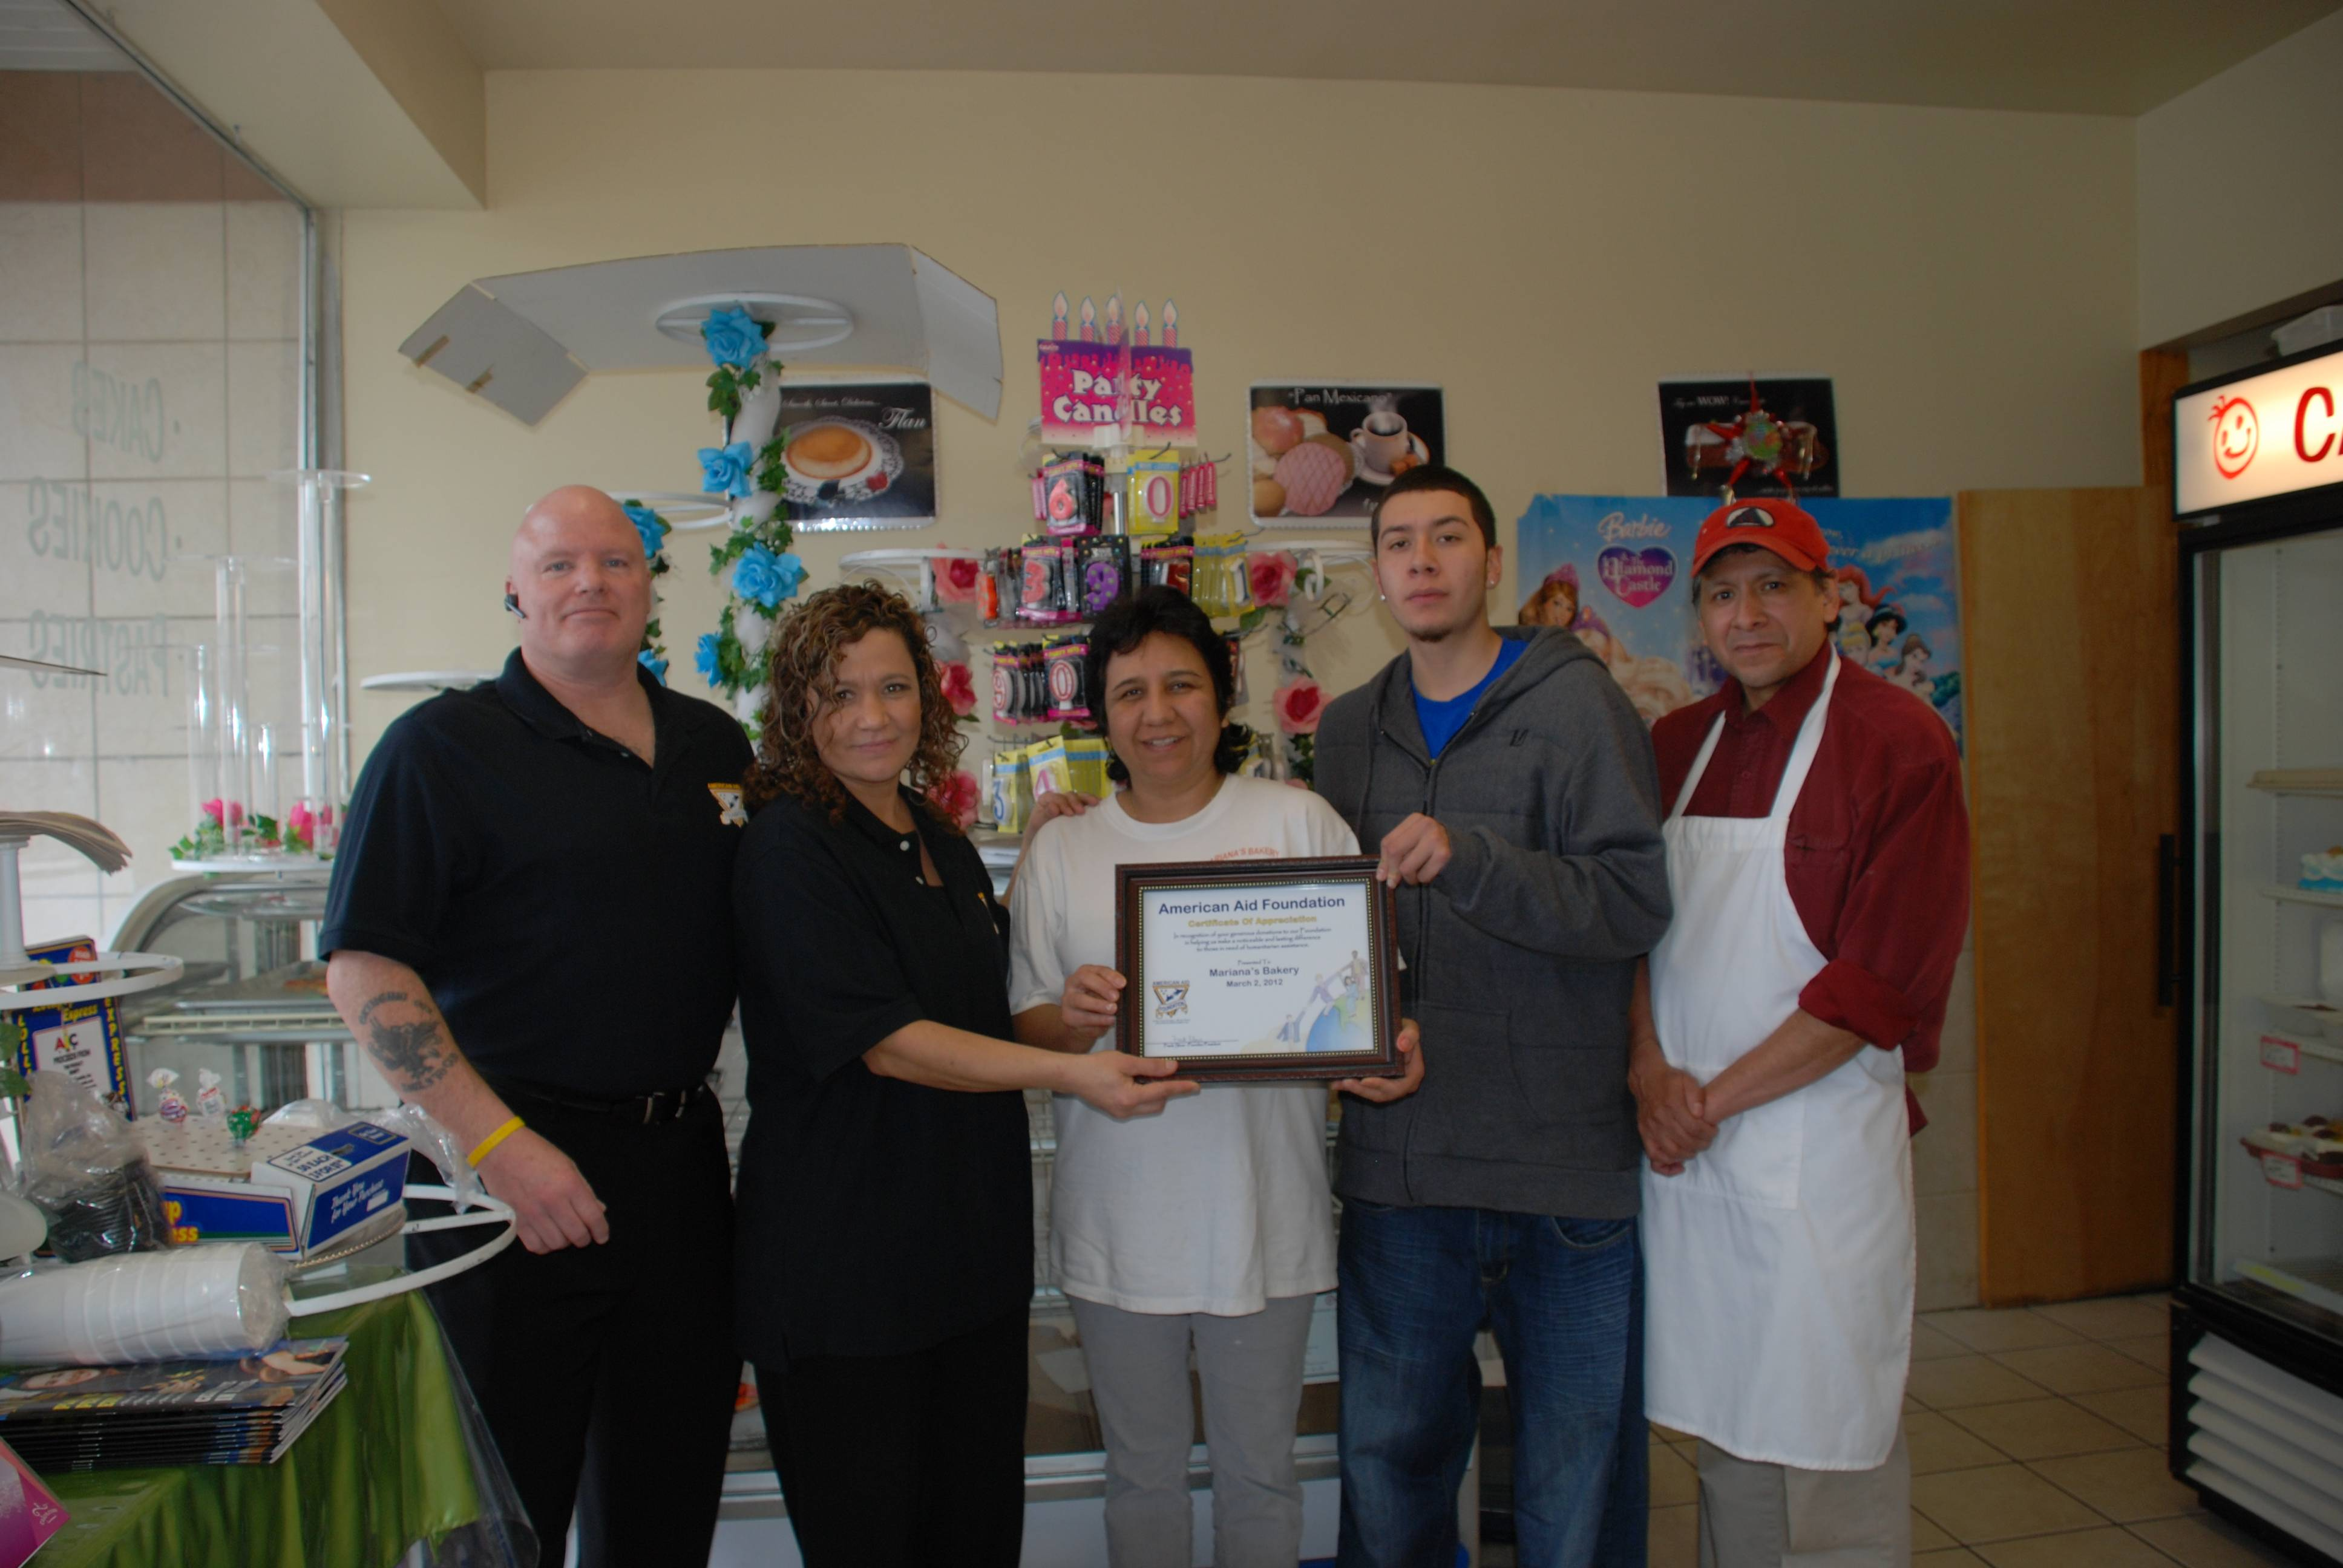 American Aid Foundation Founder/President Frank Slove & Director Carmen Gonzalez present Mariana's Bakery Owners Carmen, Miguel Jr.(son) and Miguel Sr. Gonzalez a Certificate of Appreciation for their continued generosity to the Foundation's programs. (L-R)